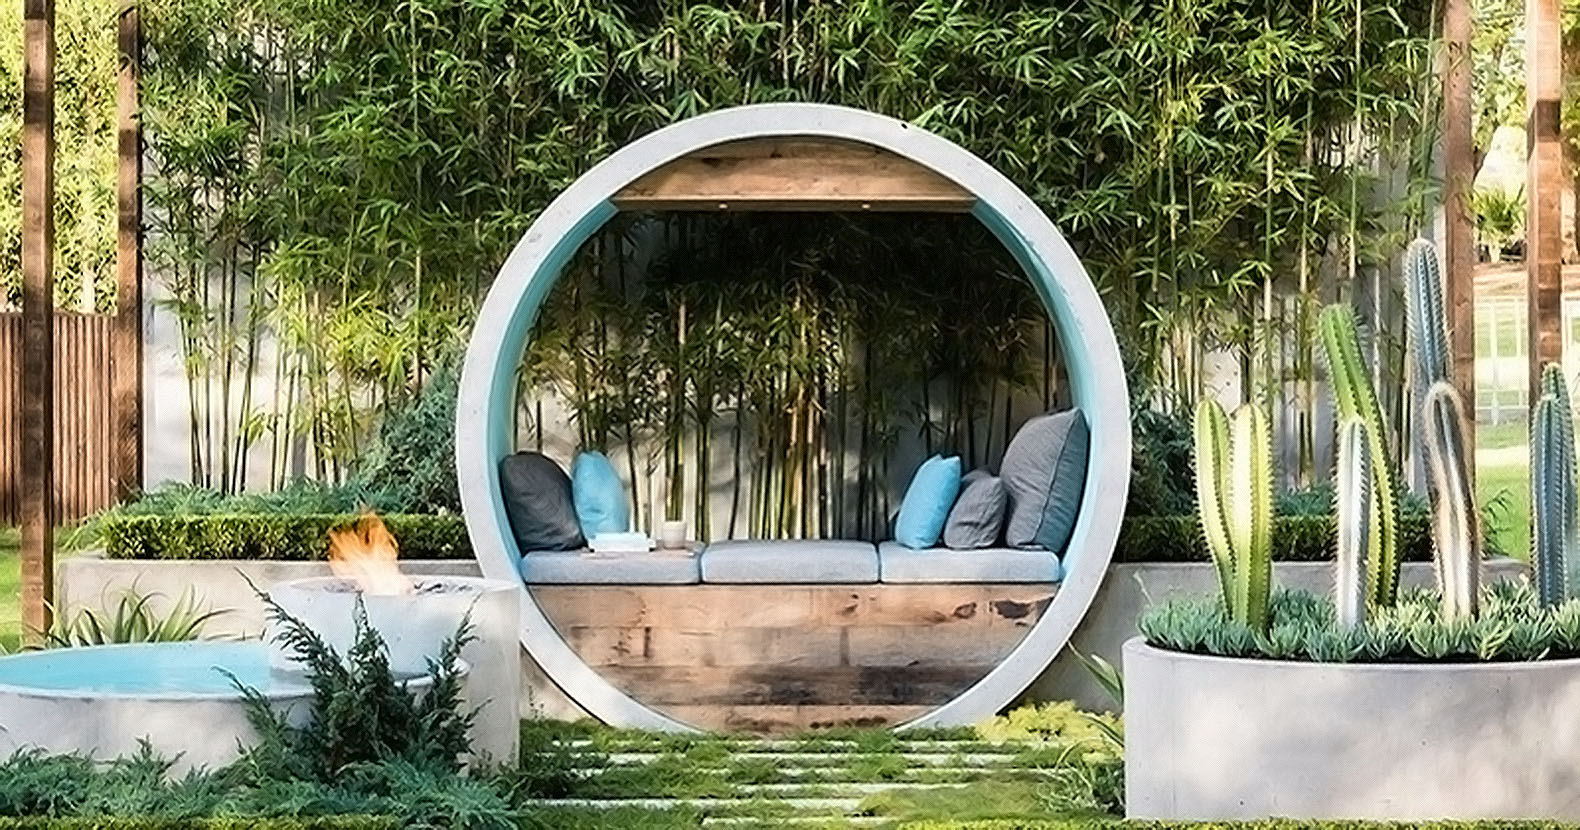 Alison Douglas Recycled Concrete Pipes To Create A Dreamy Urban Oasis